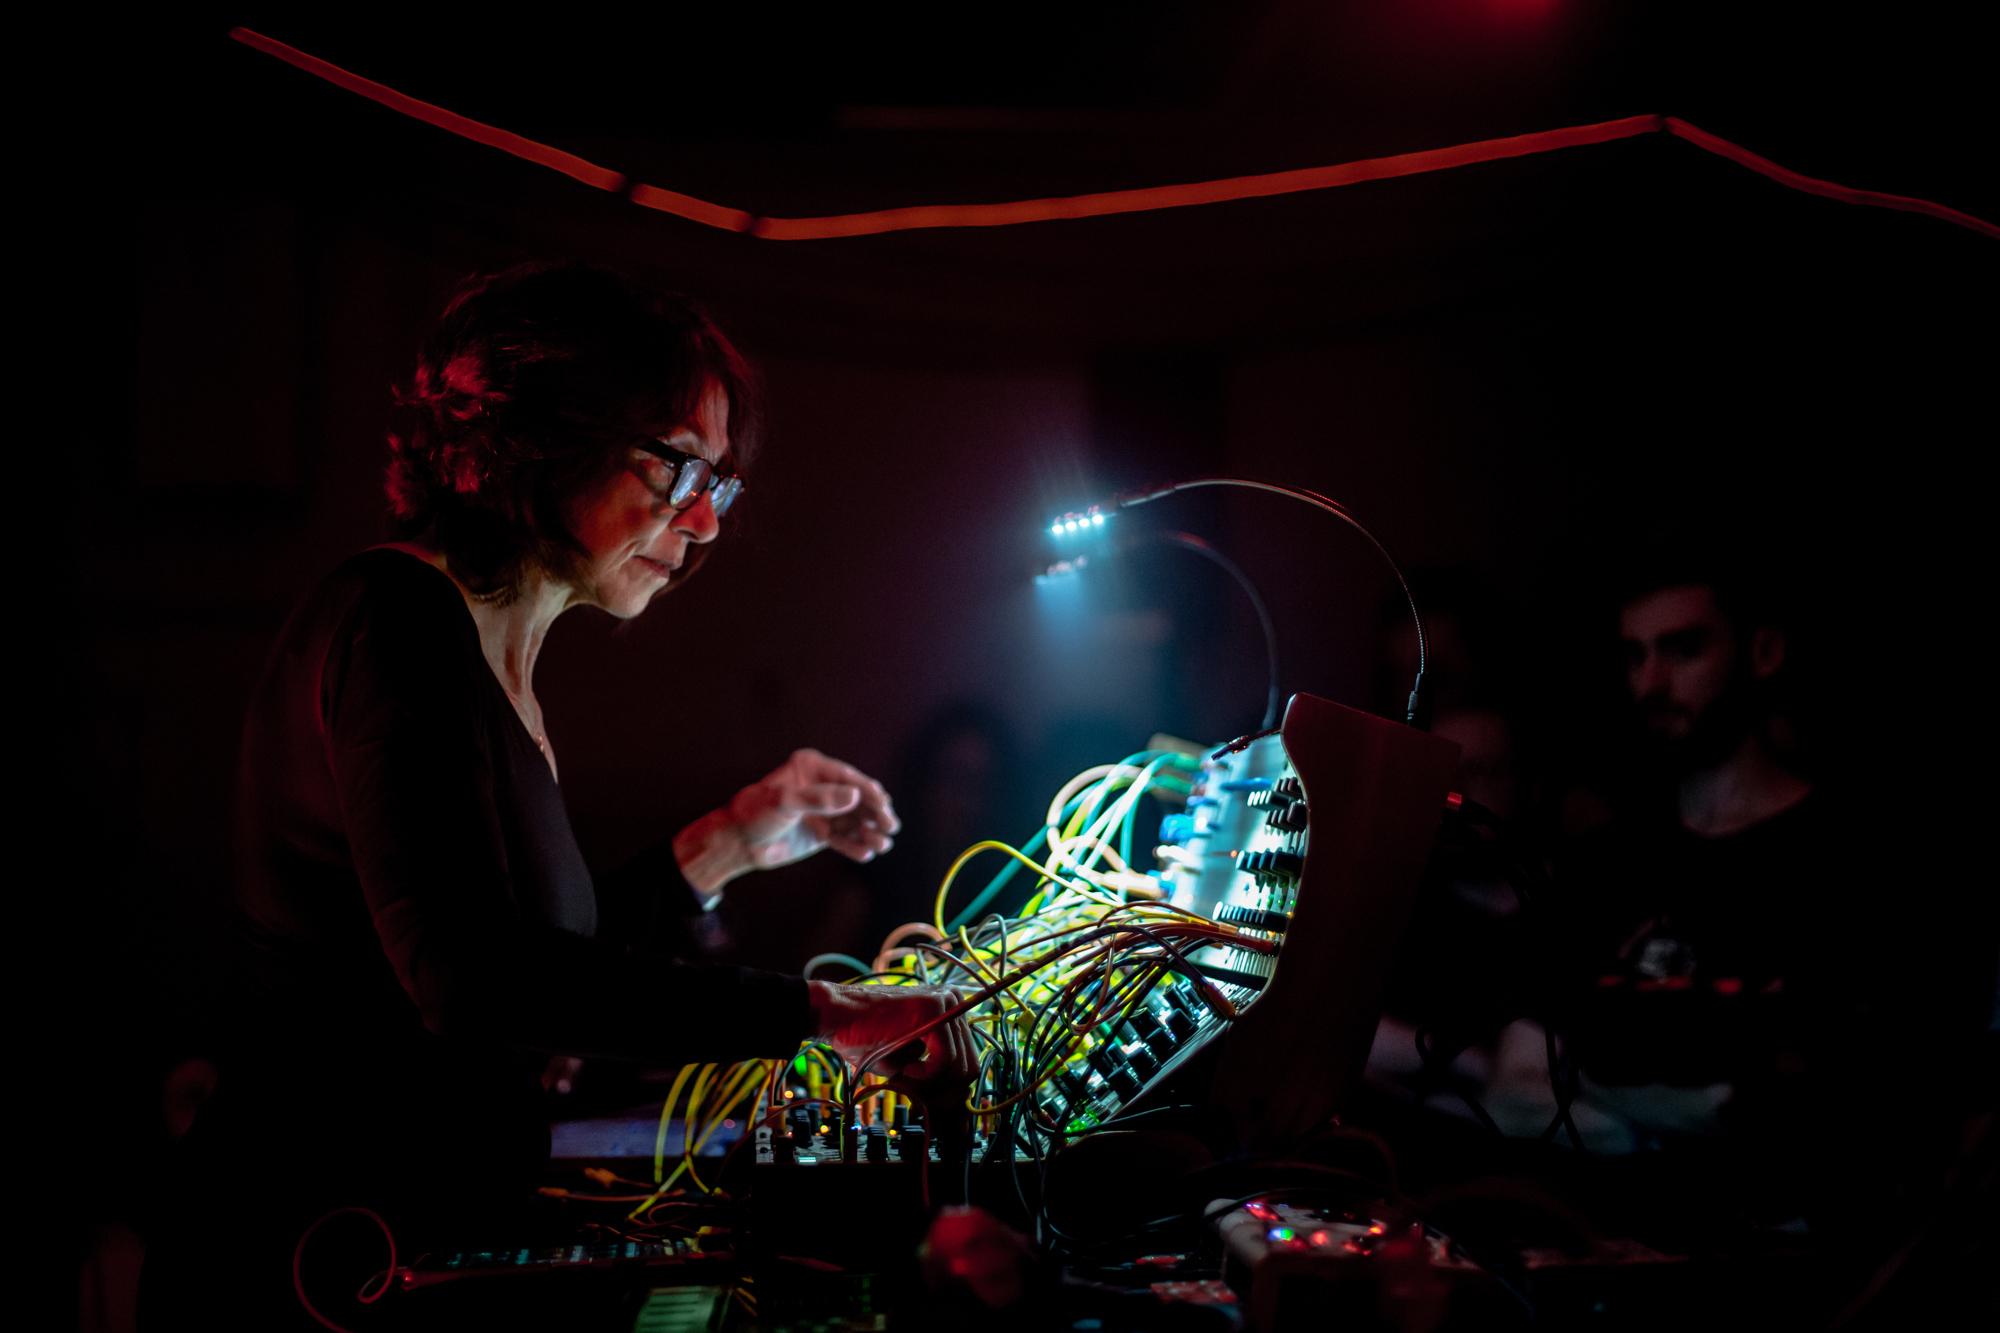 Live from SXSW with Suzanne Ciani - Electronic Music Pioneer